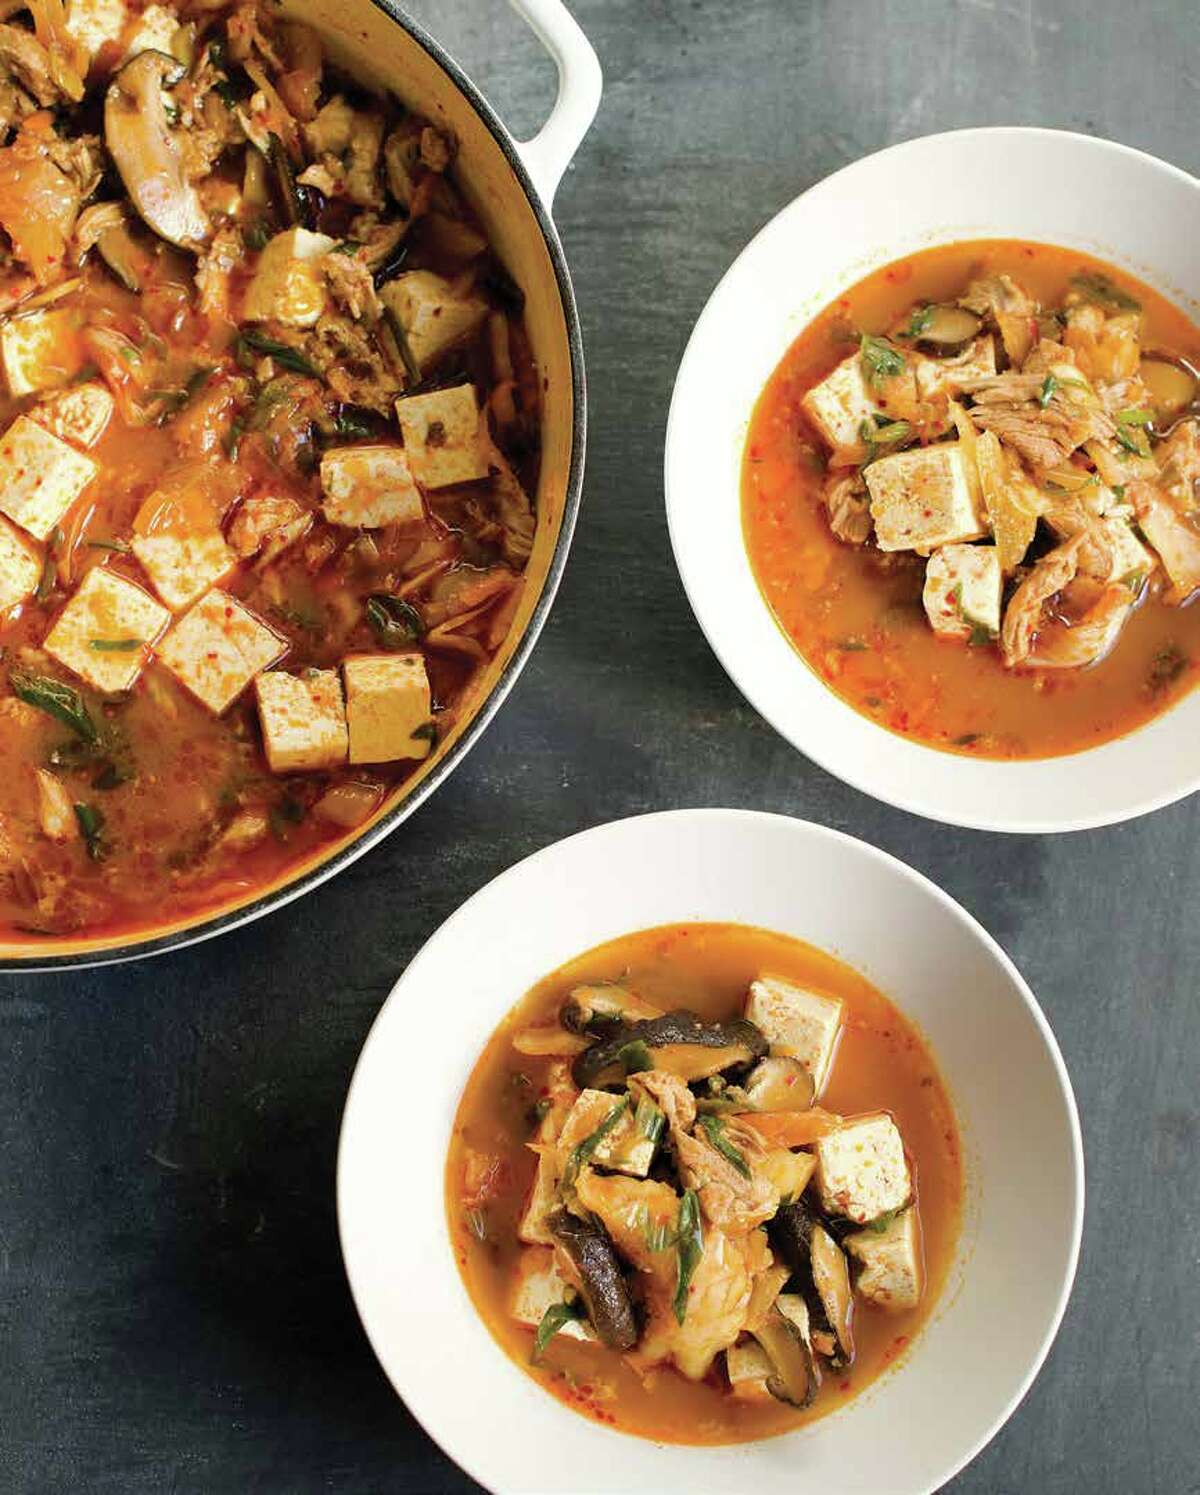 Korean Pork and Kimchi Stew is featured in